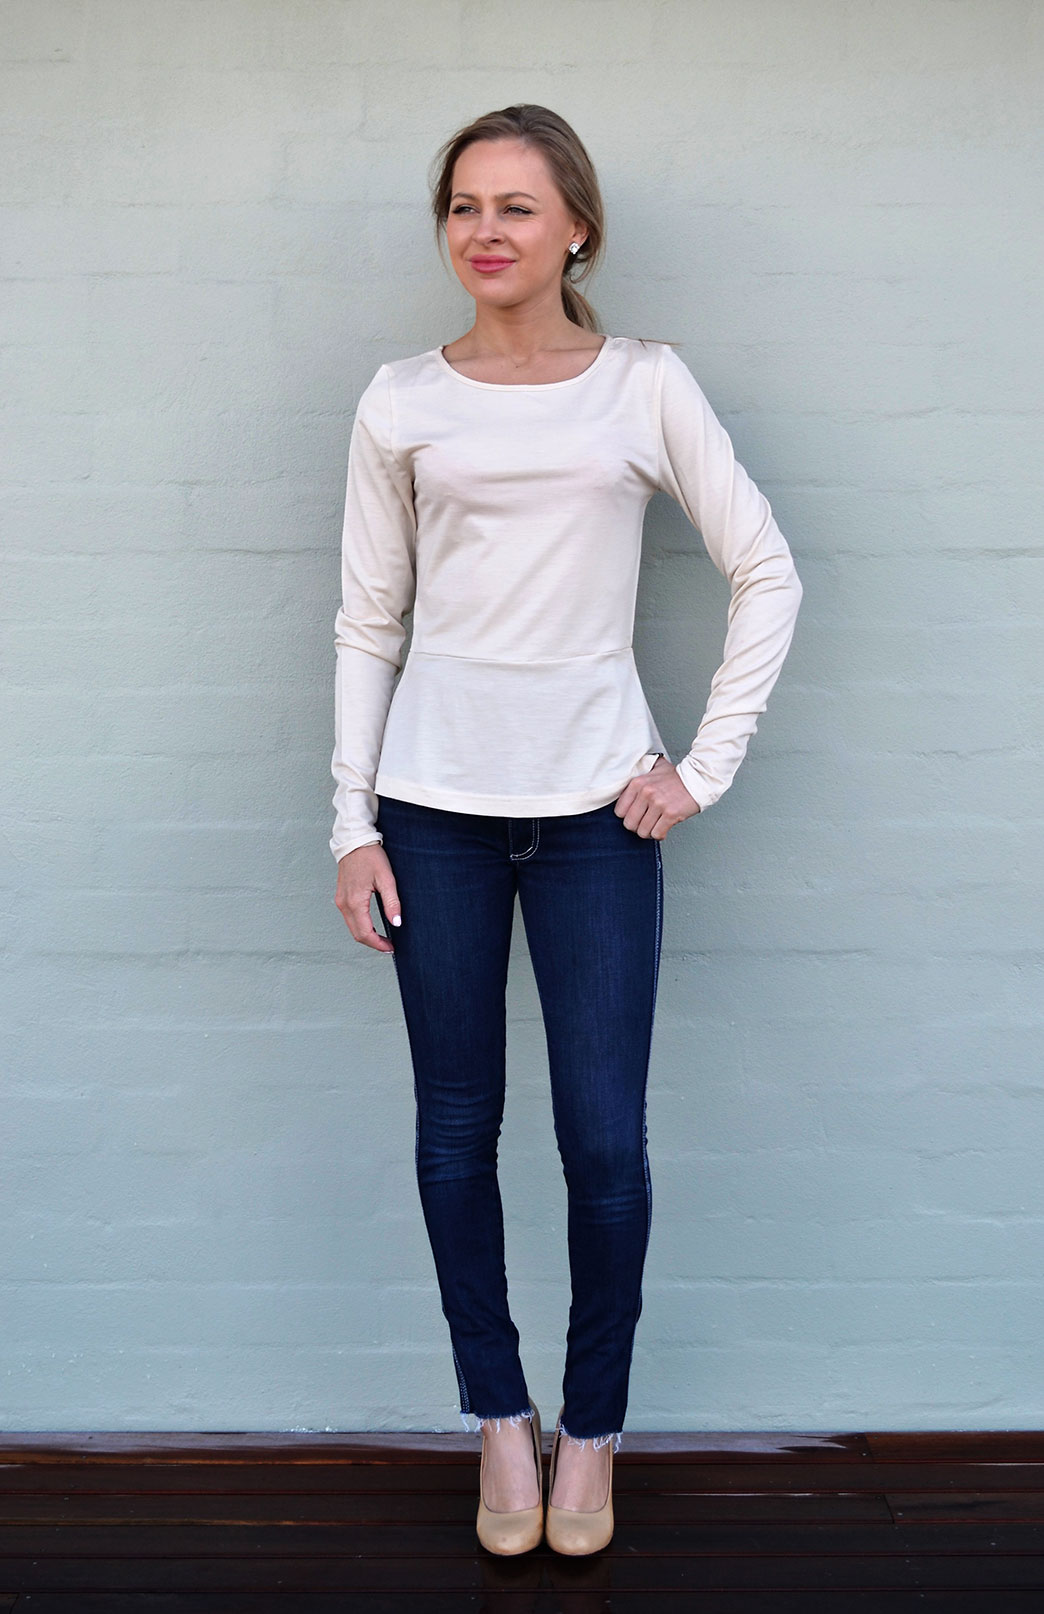 Peplum Top - Long Sleeved - Women's Cream Long Sleeve Wool Winter Top - Smitten Merino Tasmania Australia